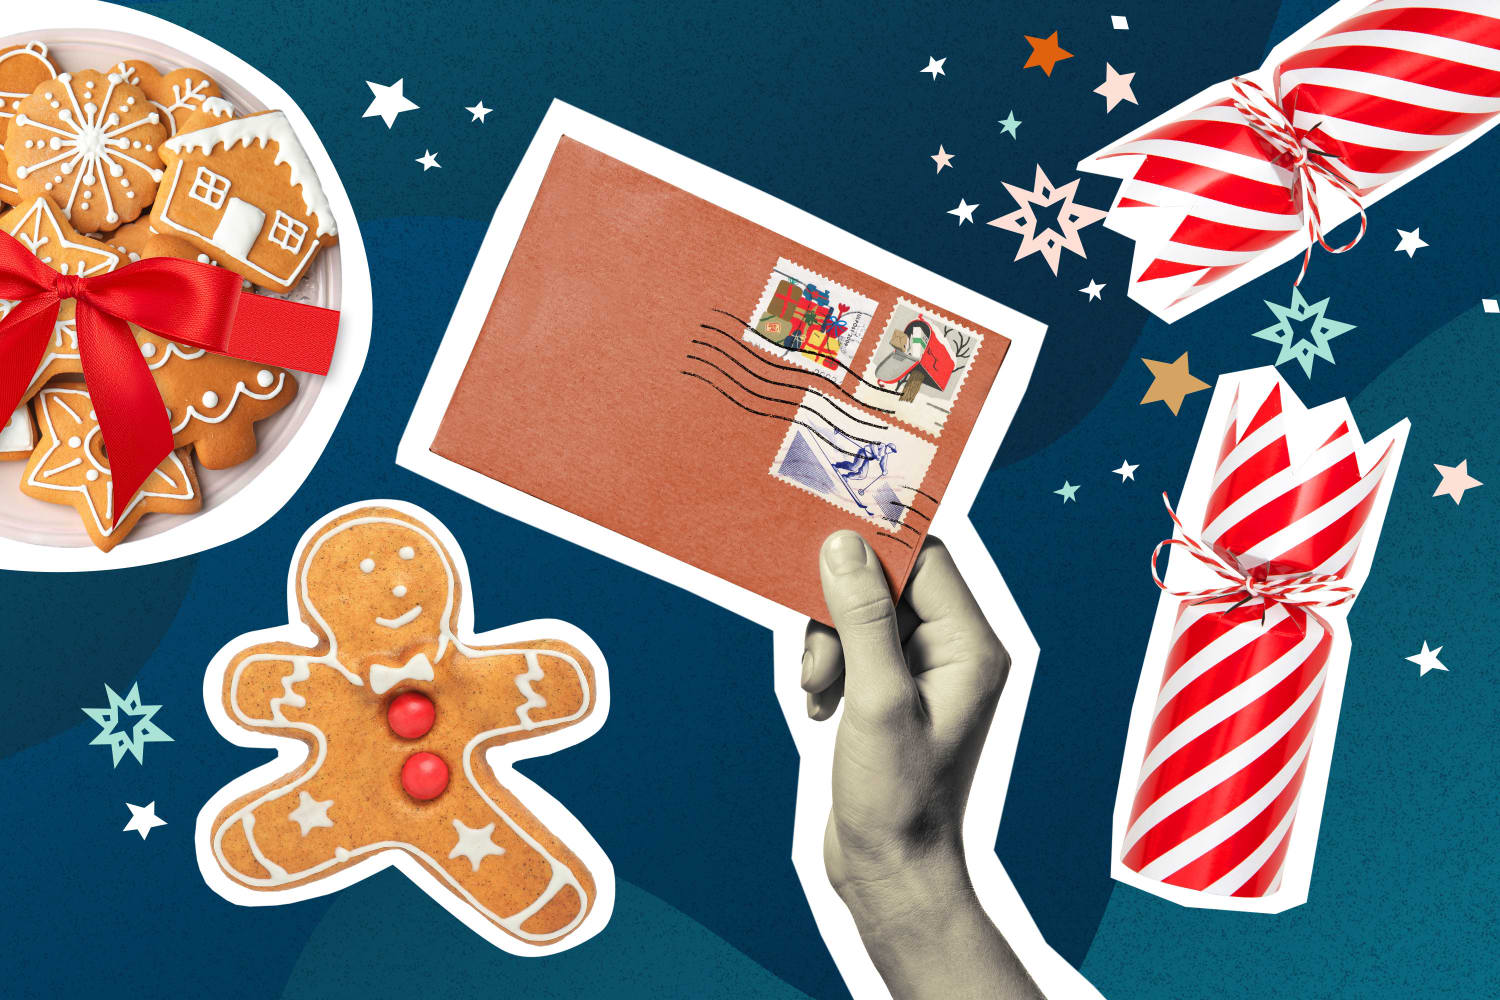 11 Ideas for Sending a Bit of Holiday Cheer to Faraway Loved Ones